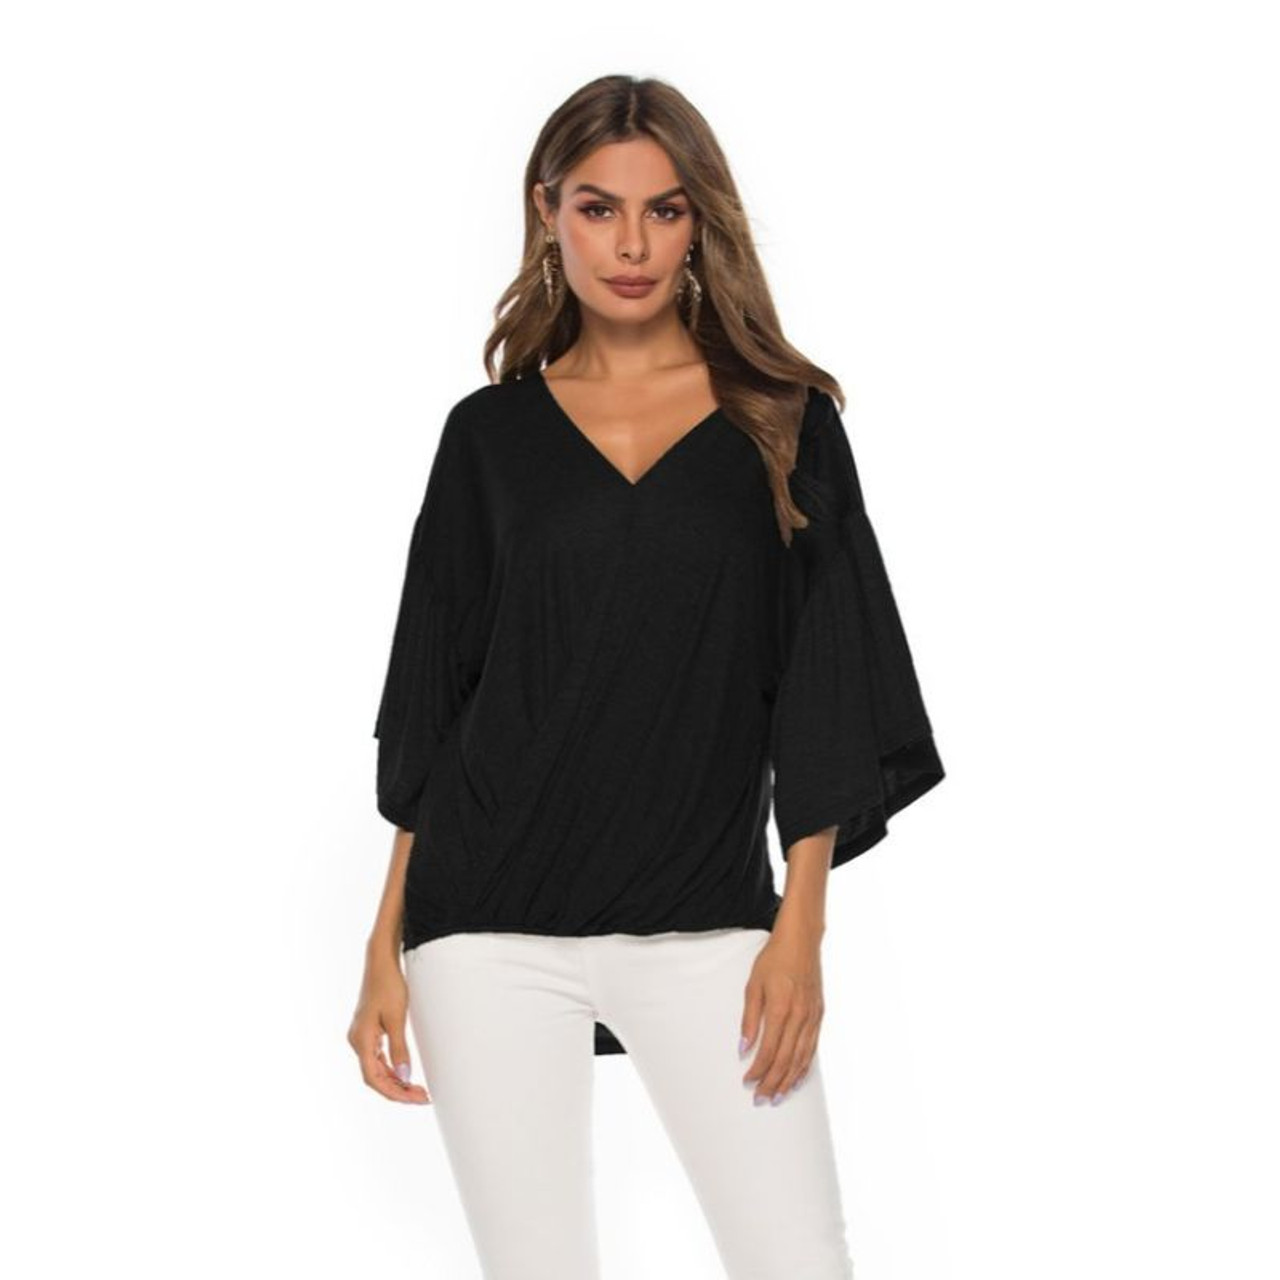 Women's Bell Sleeve Front Cross Over Top by Lilly Posh